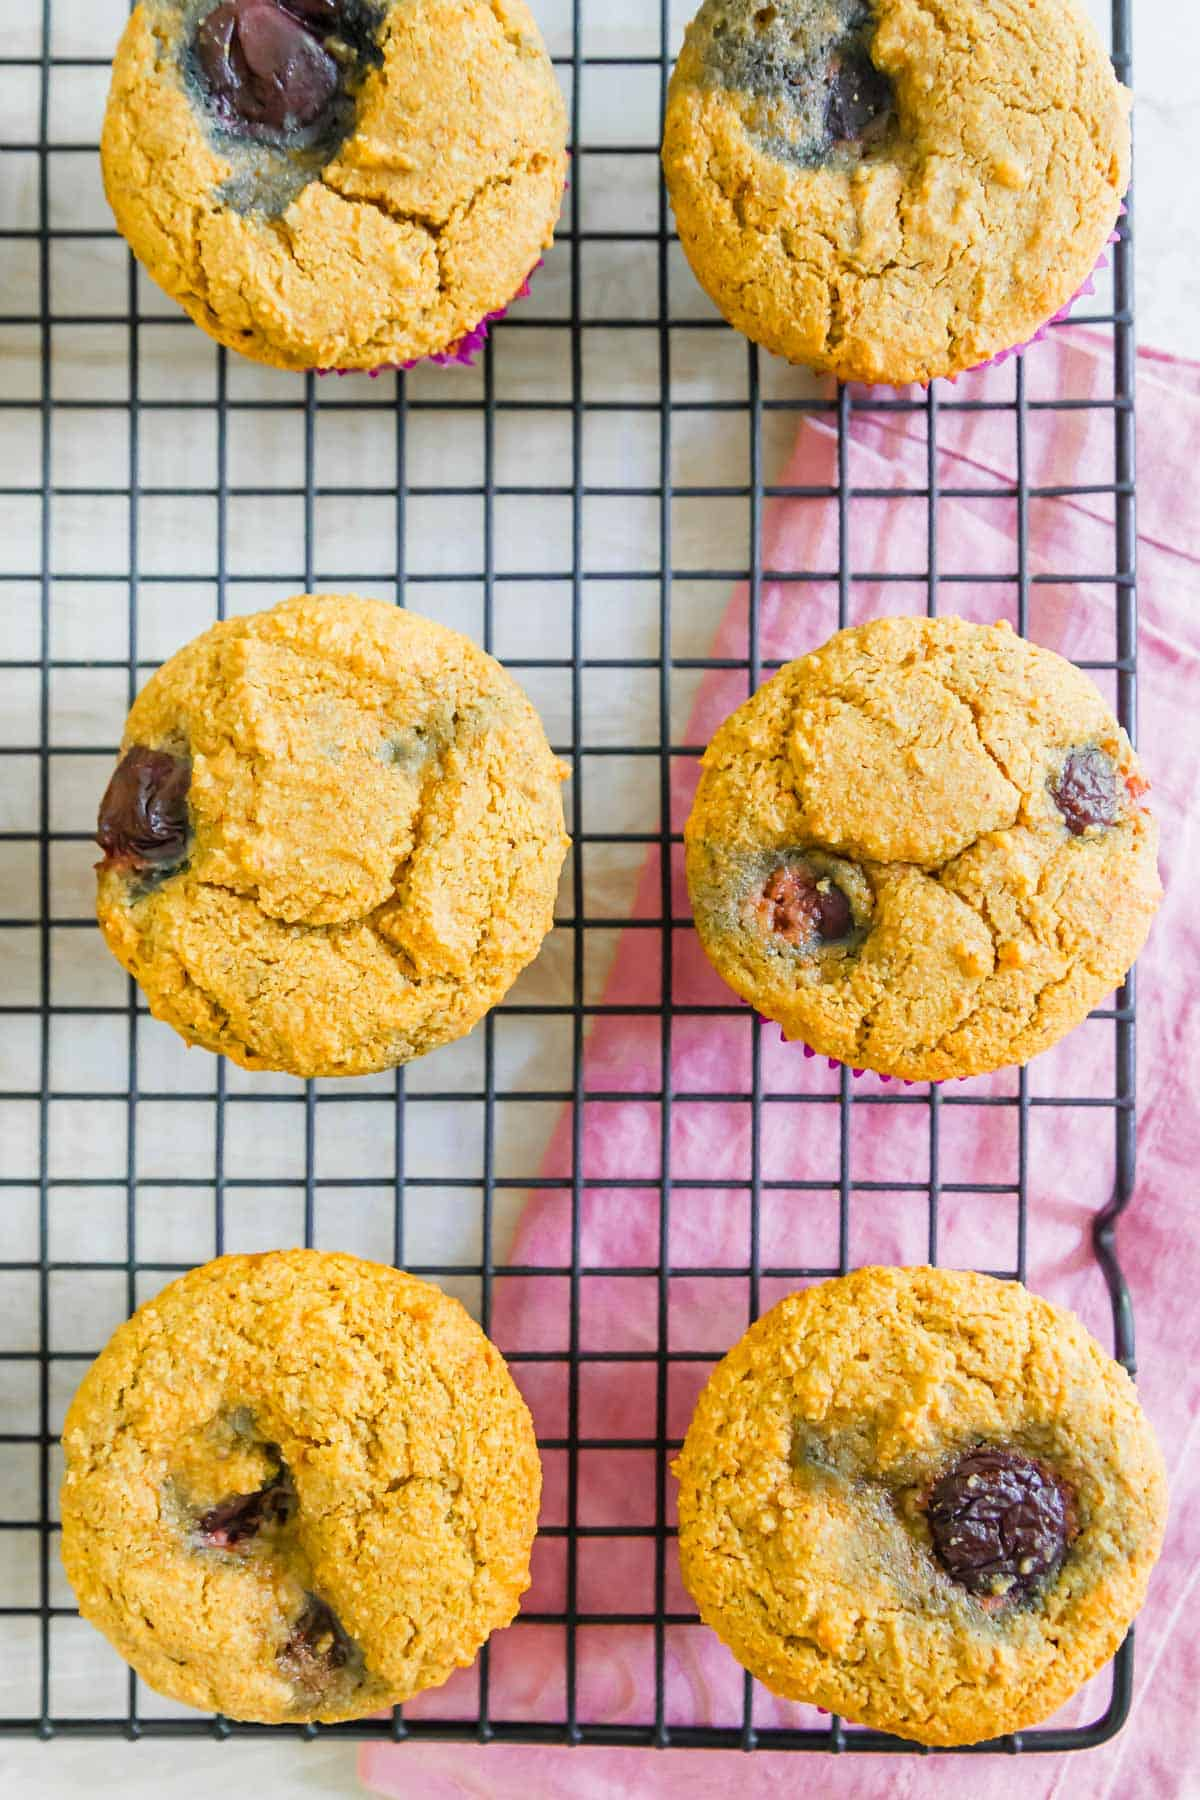 Vegan cornmeal muffins made with cornmeal and almond flour have a hearty texture and slightly sweet flavor filled with fresh summer cherries.